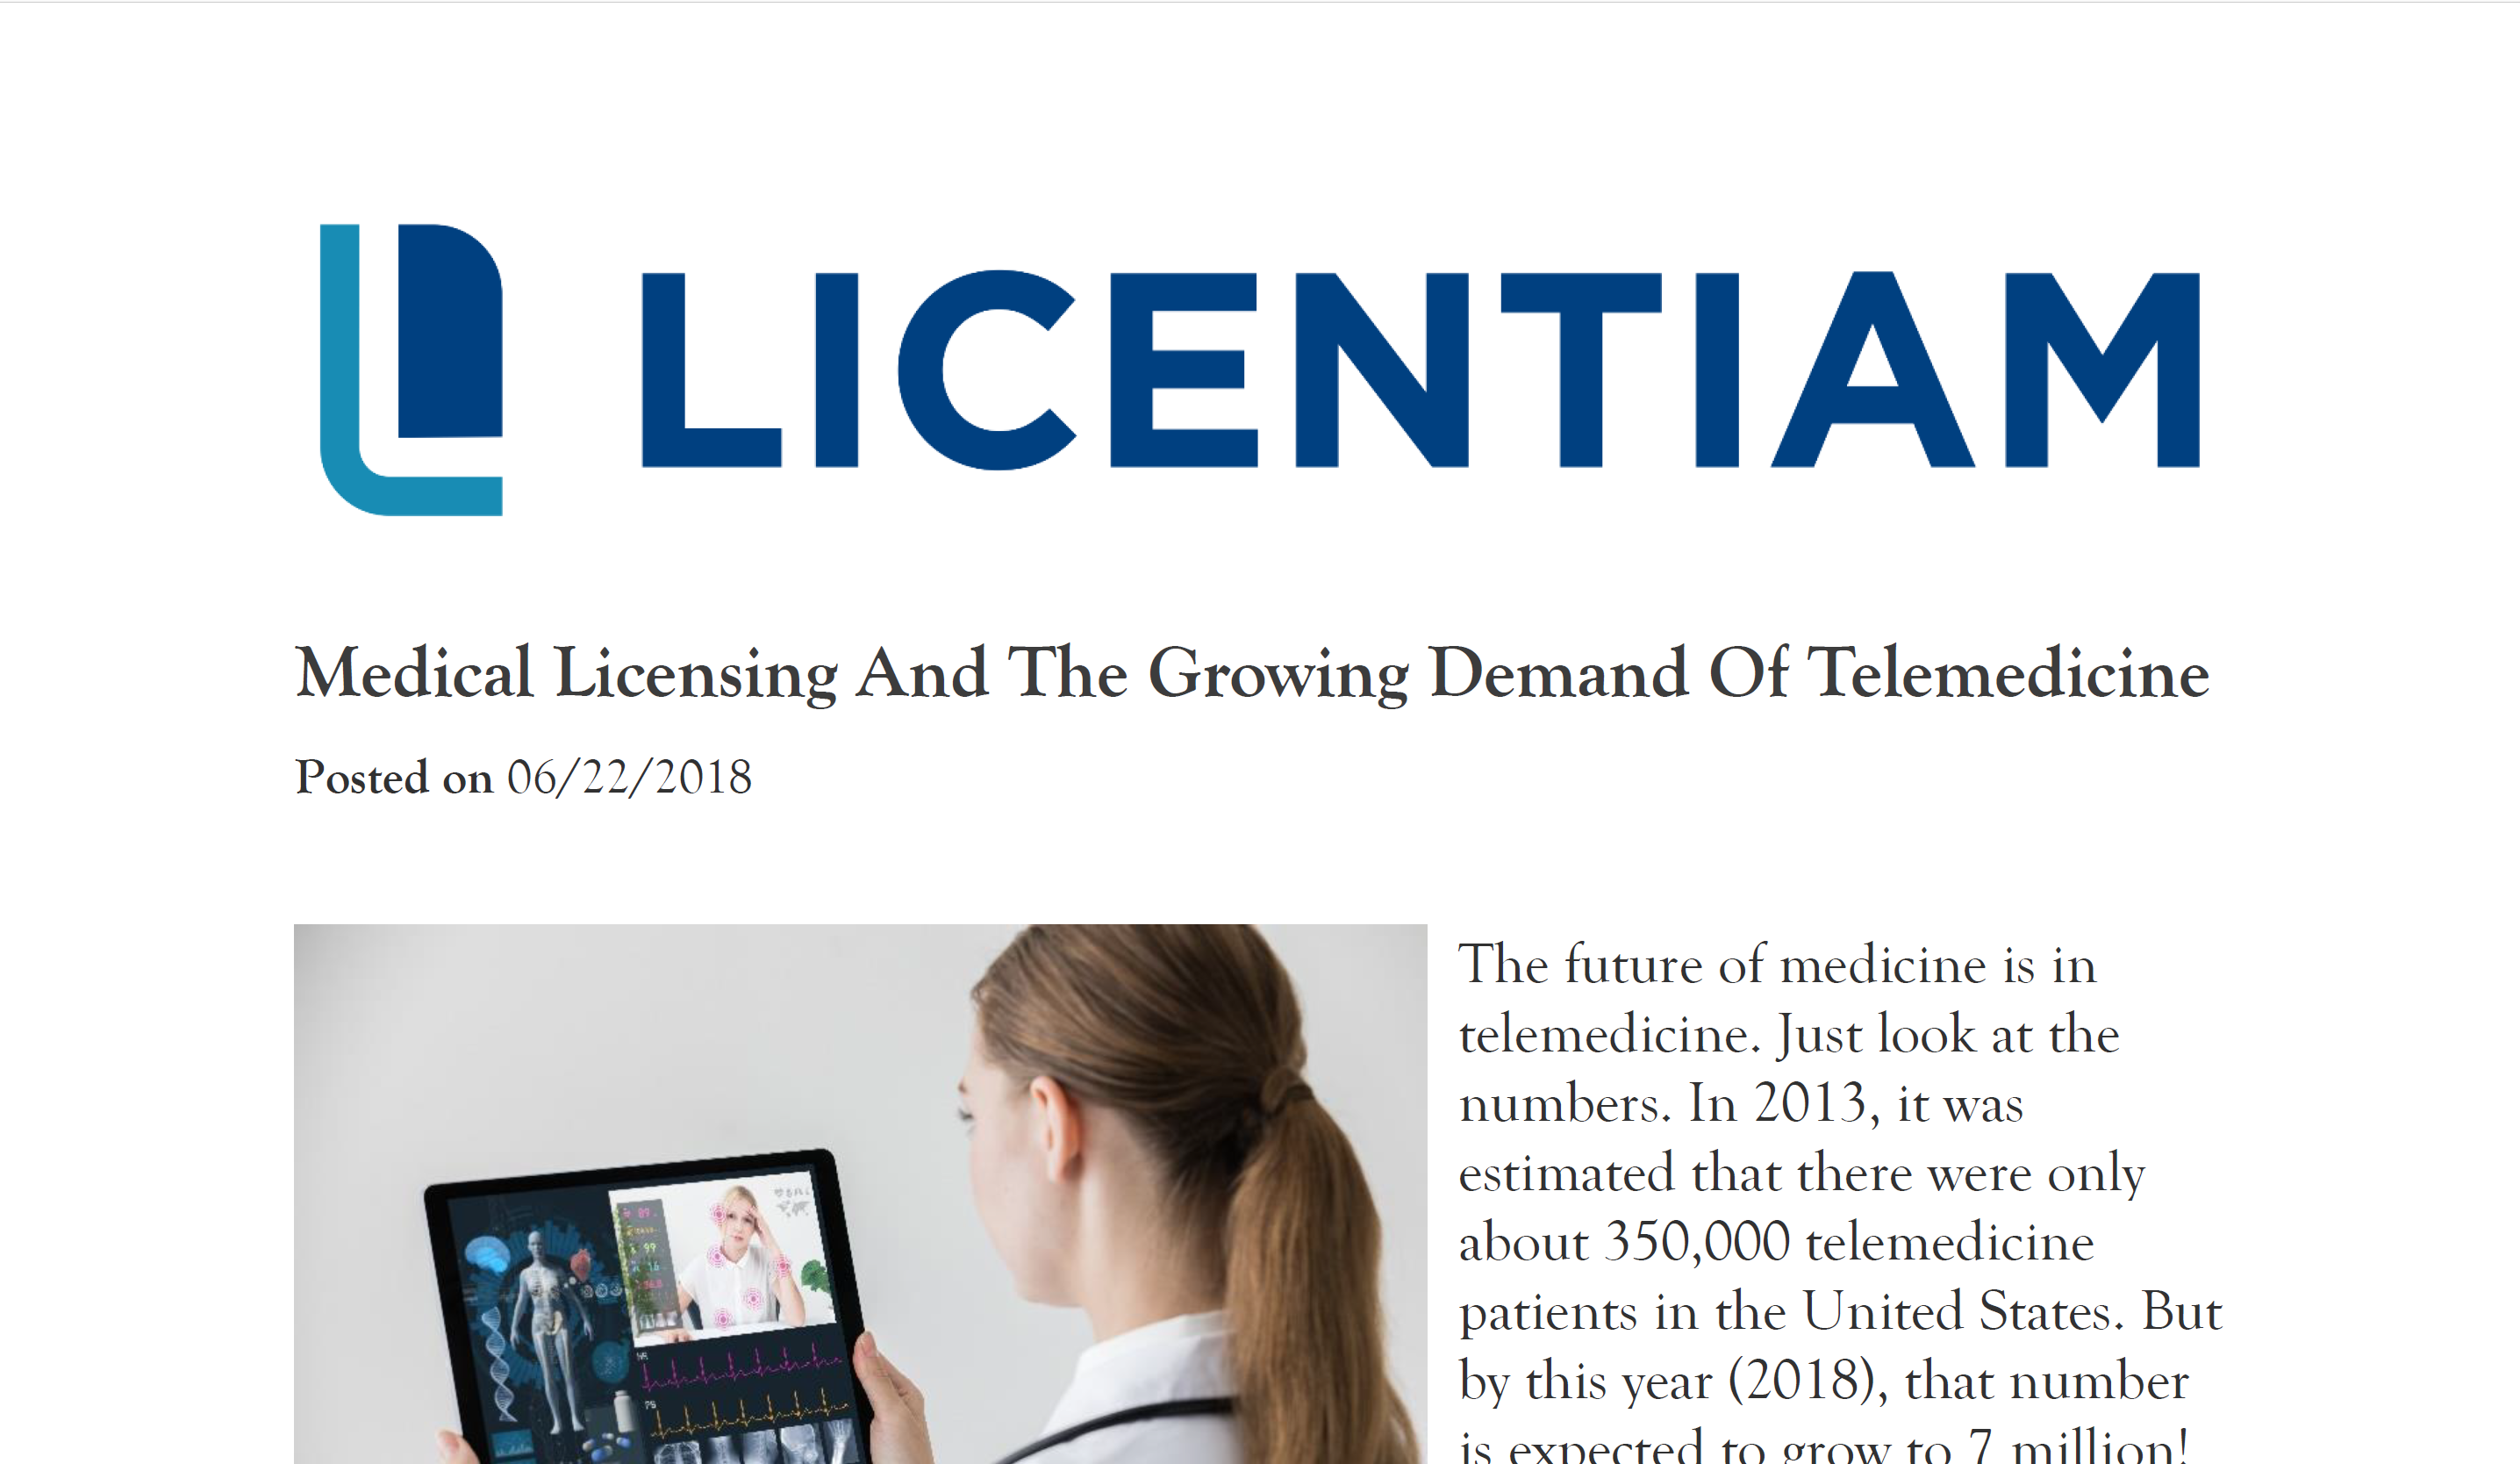 Licentiam - Growing demand photo